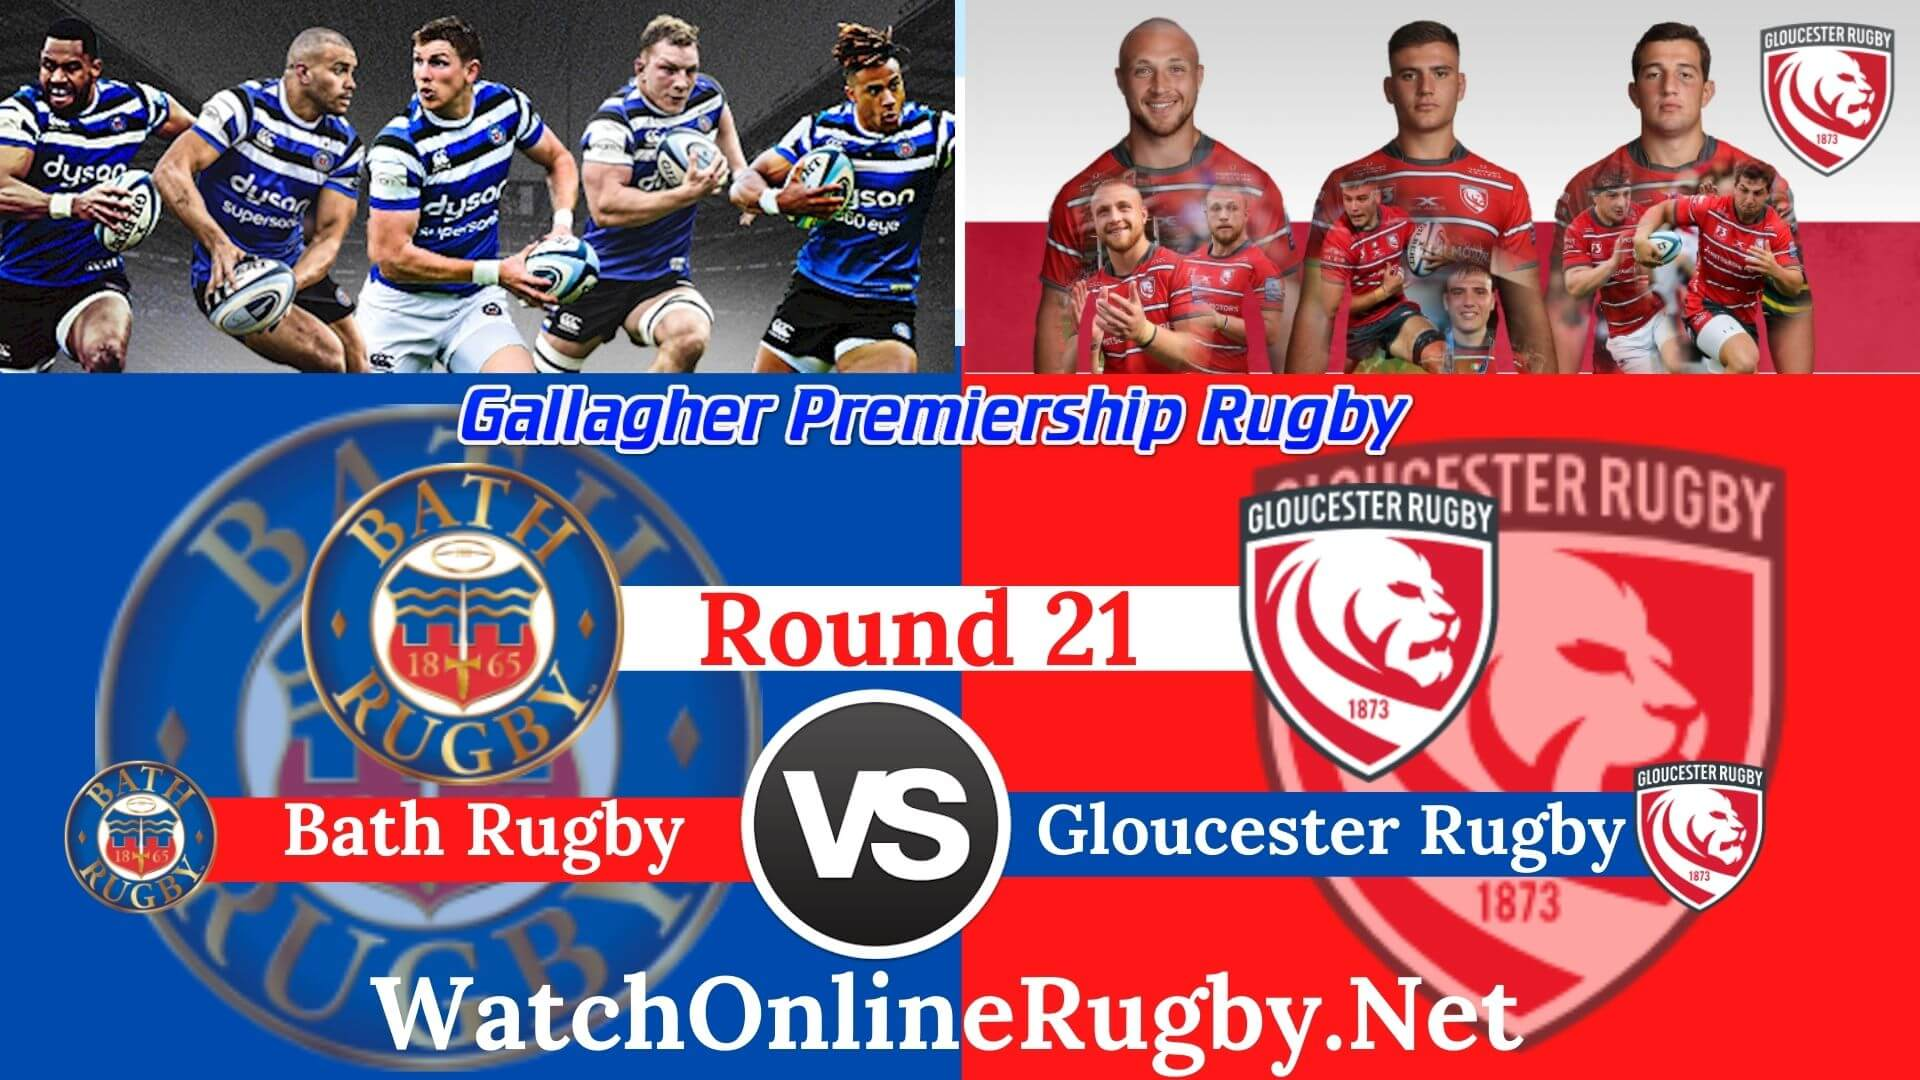 live-bath-rugby-vs-gloucester-rugby-online